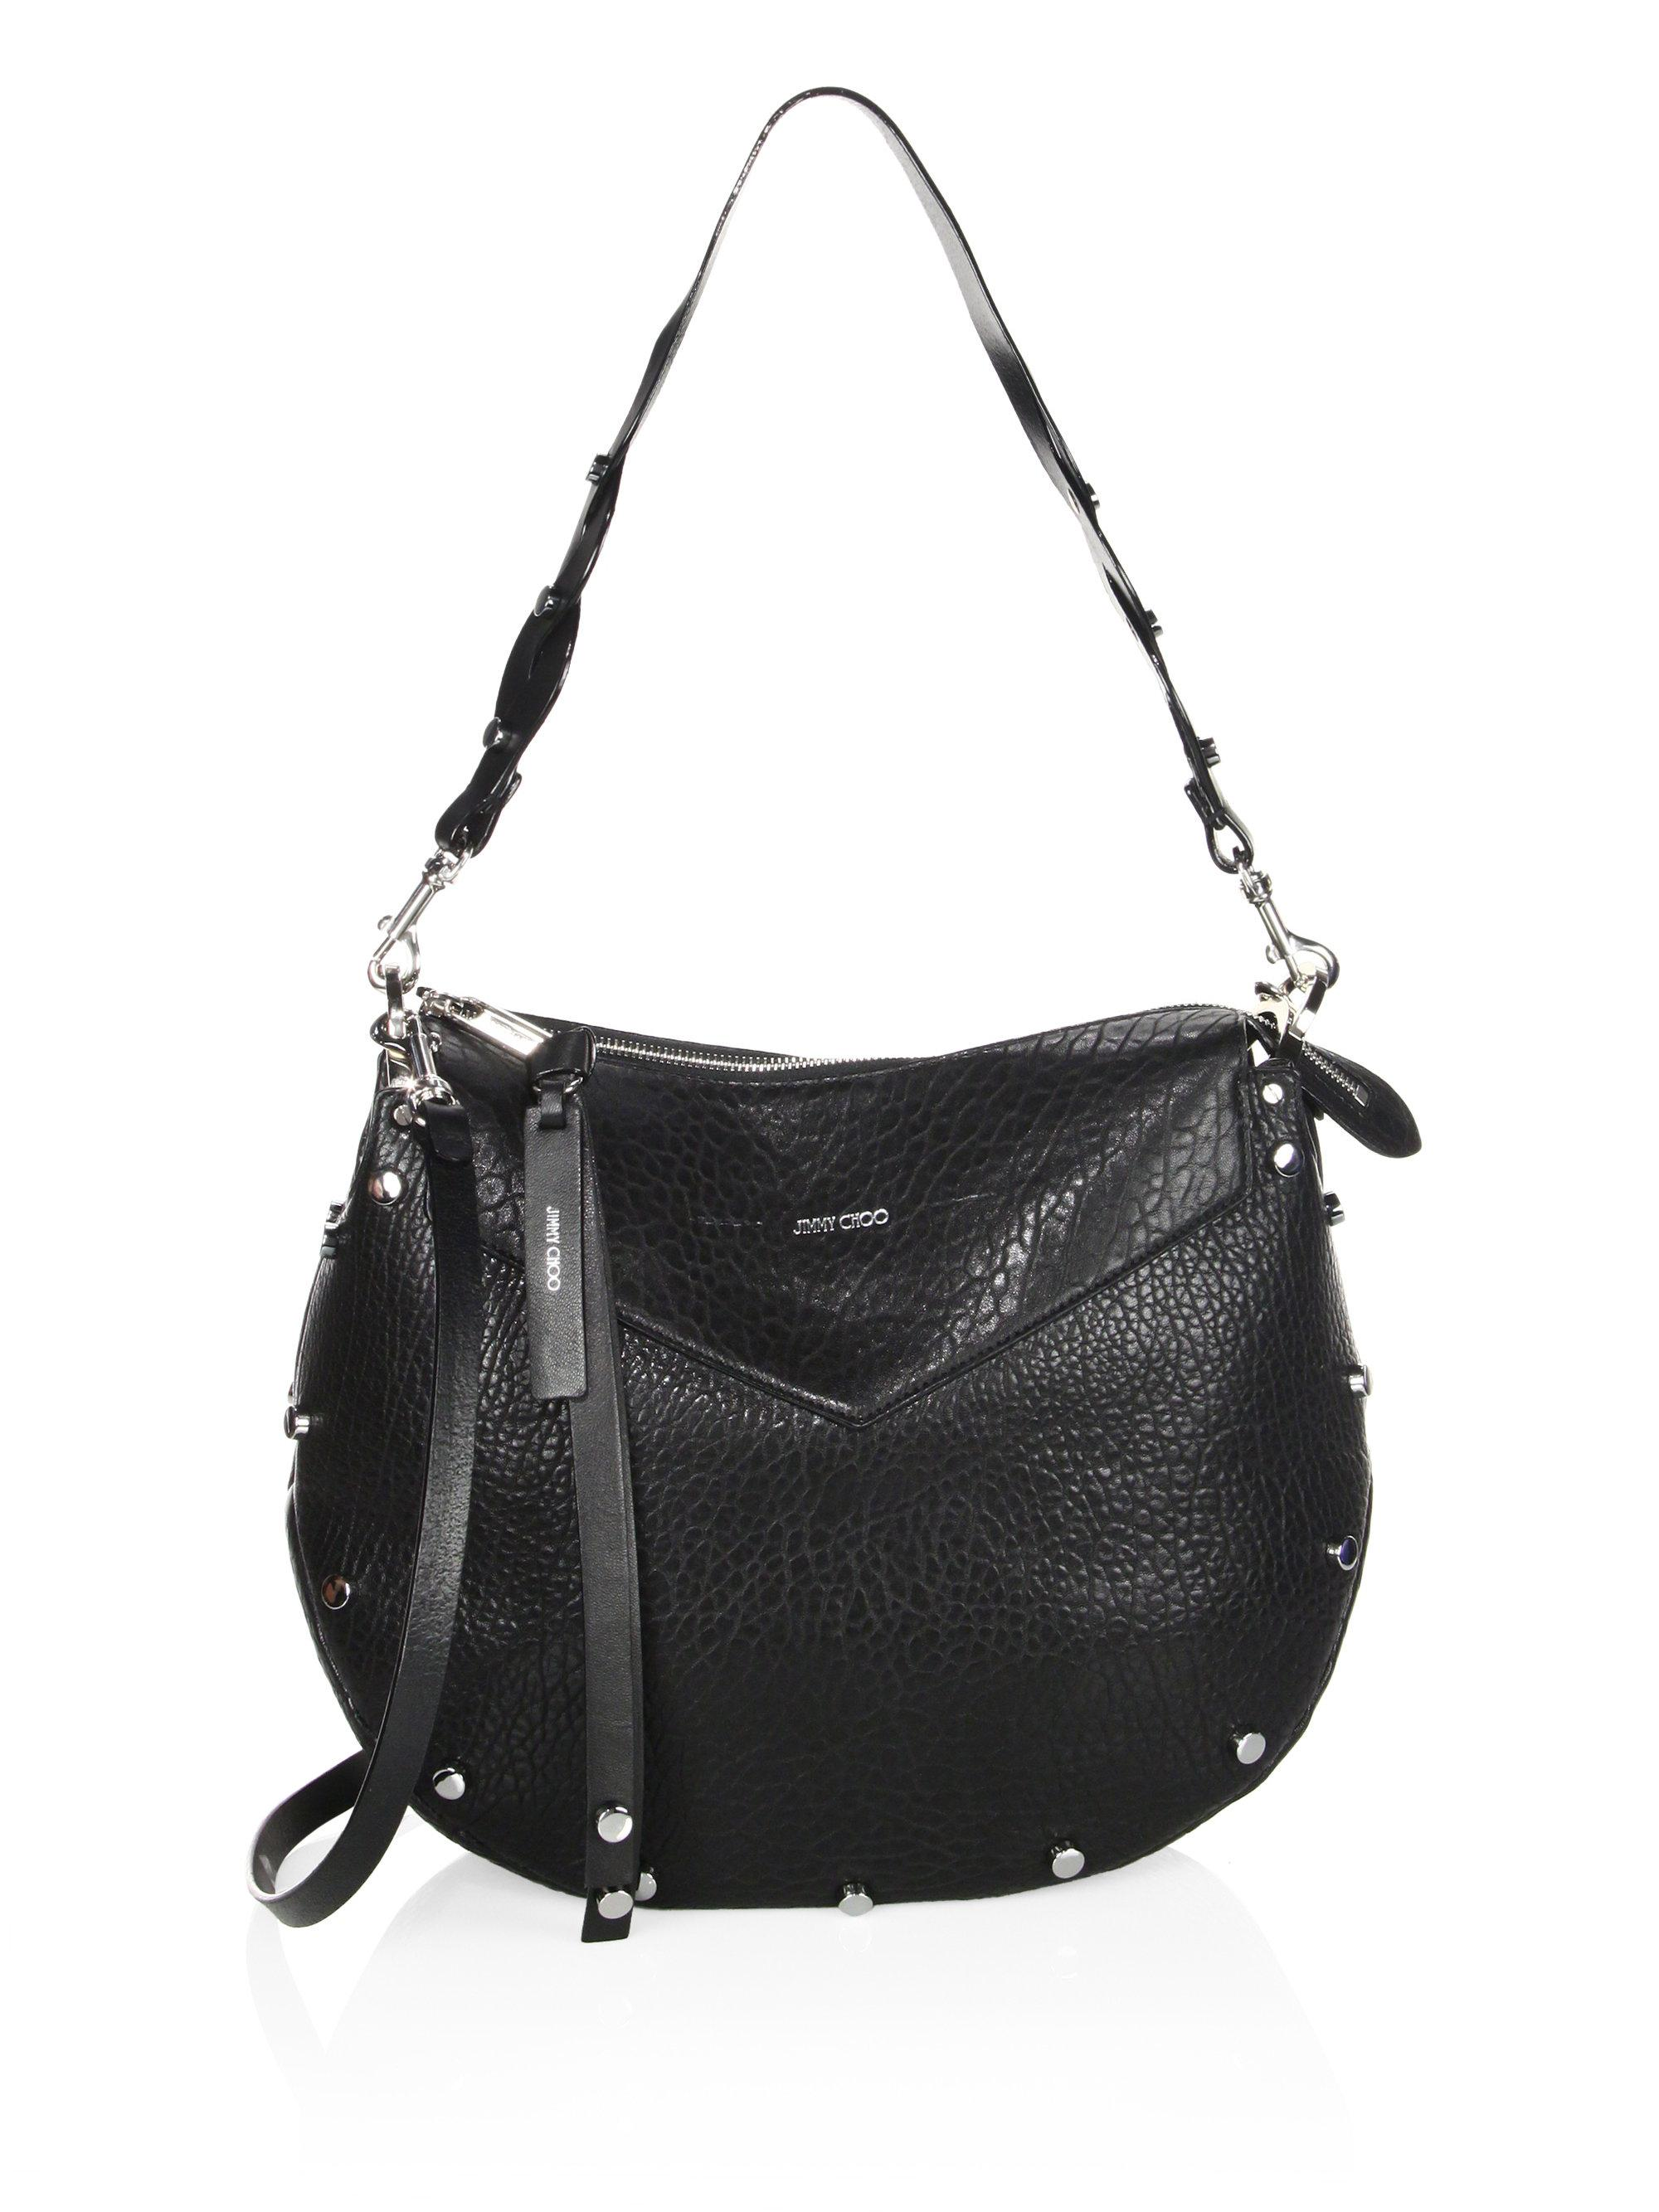 d25894f3350fb Lyst - Jimmy Choo Artie Grainy Leather Shoulder Bag in Black